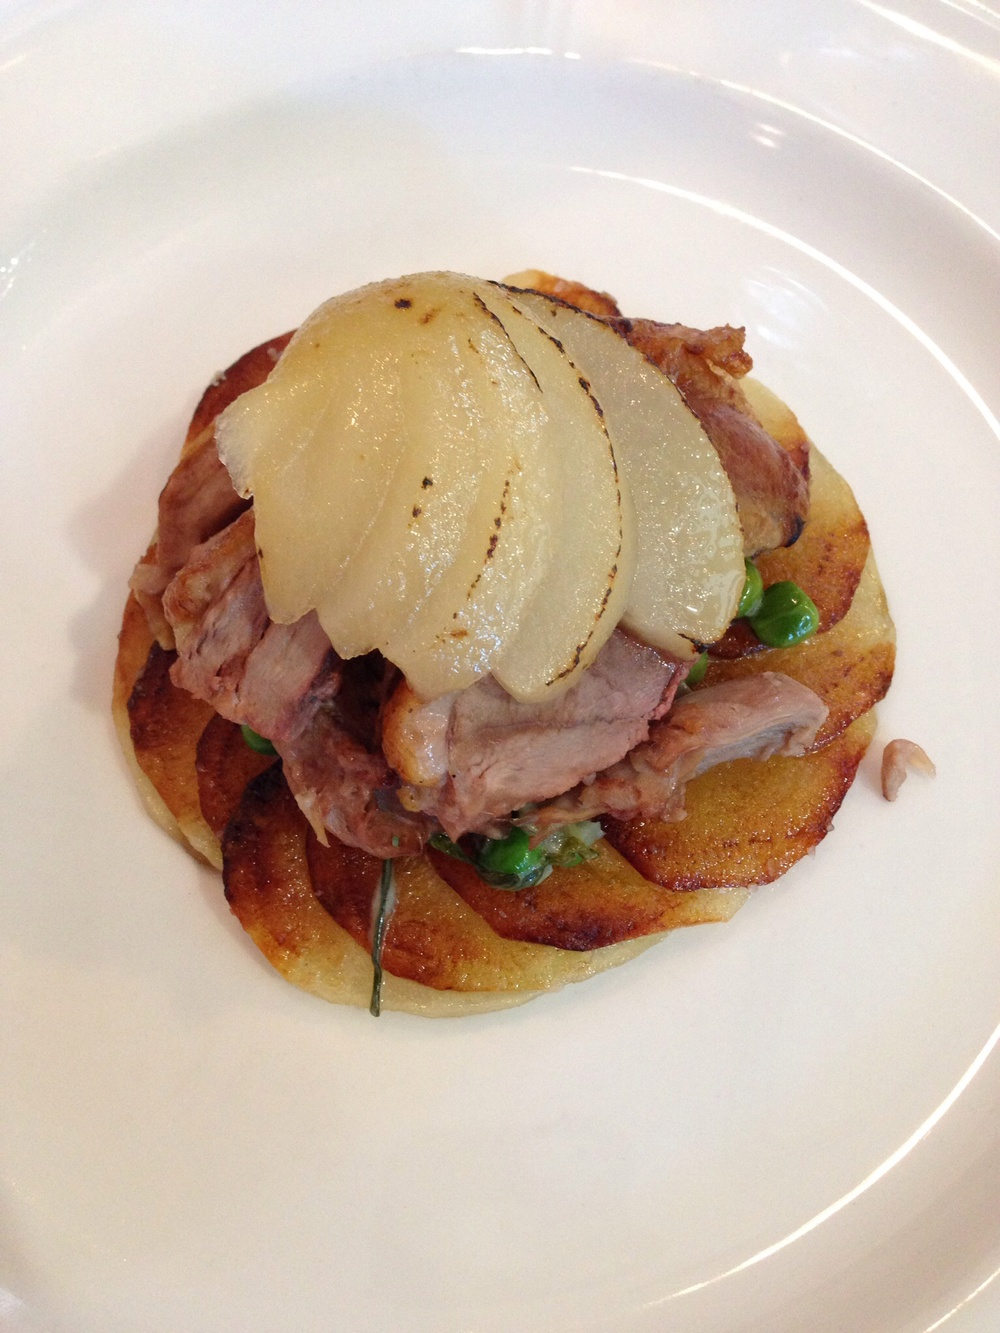 Roasted duck and peaches